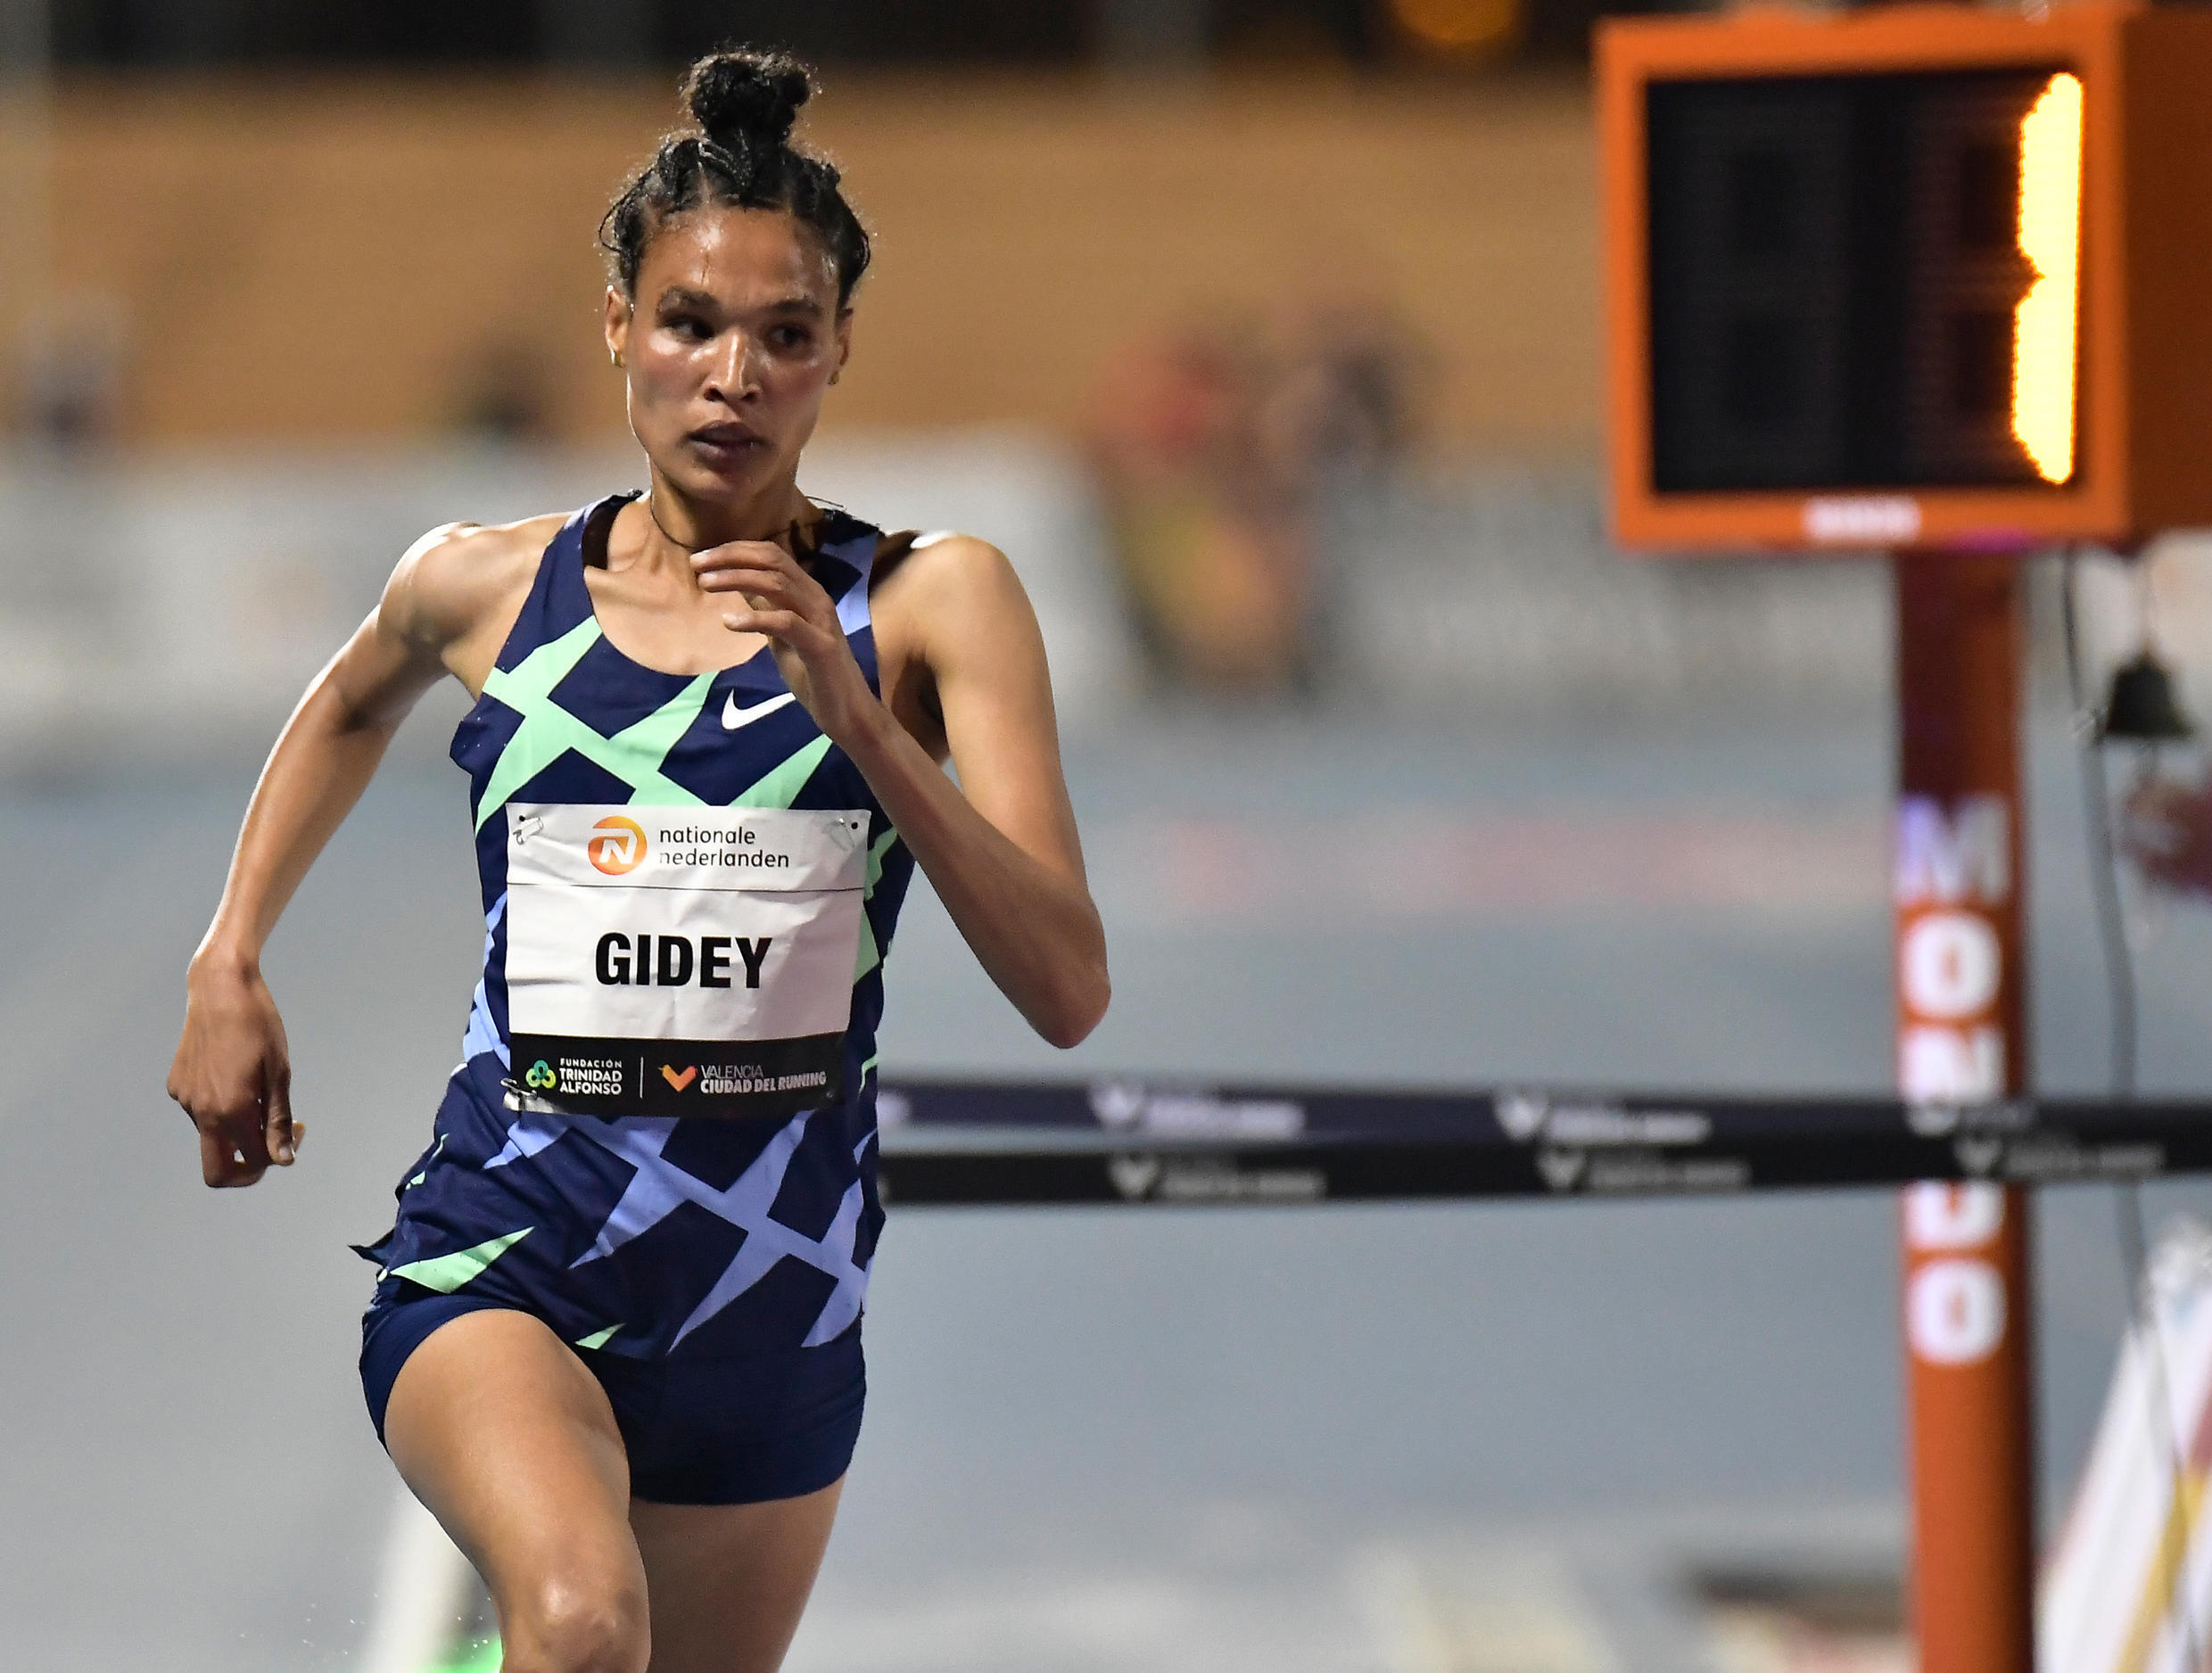 Ethiopia's Letesenbet Gidey now holds the women's world records for 5,000m and 10,000m